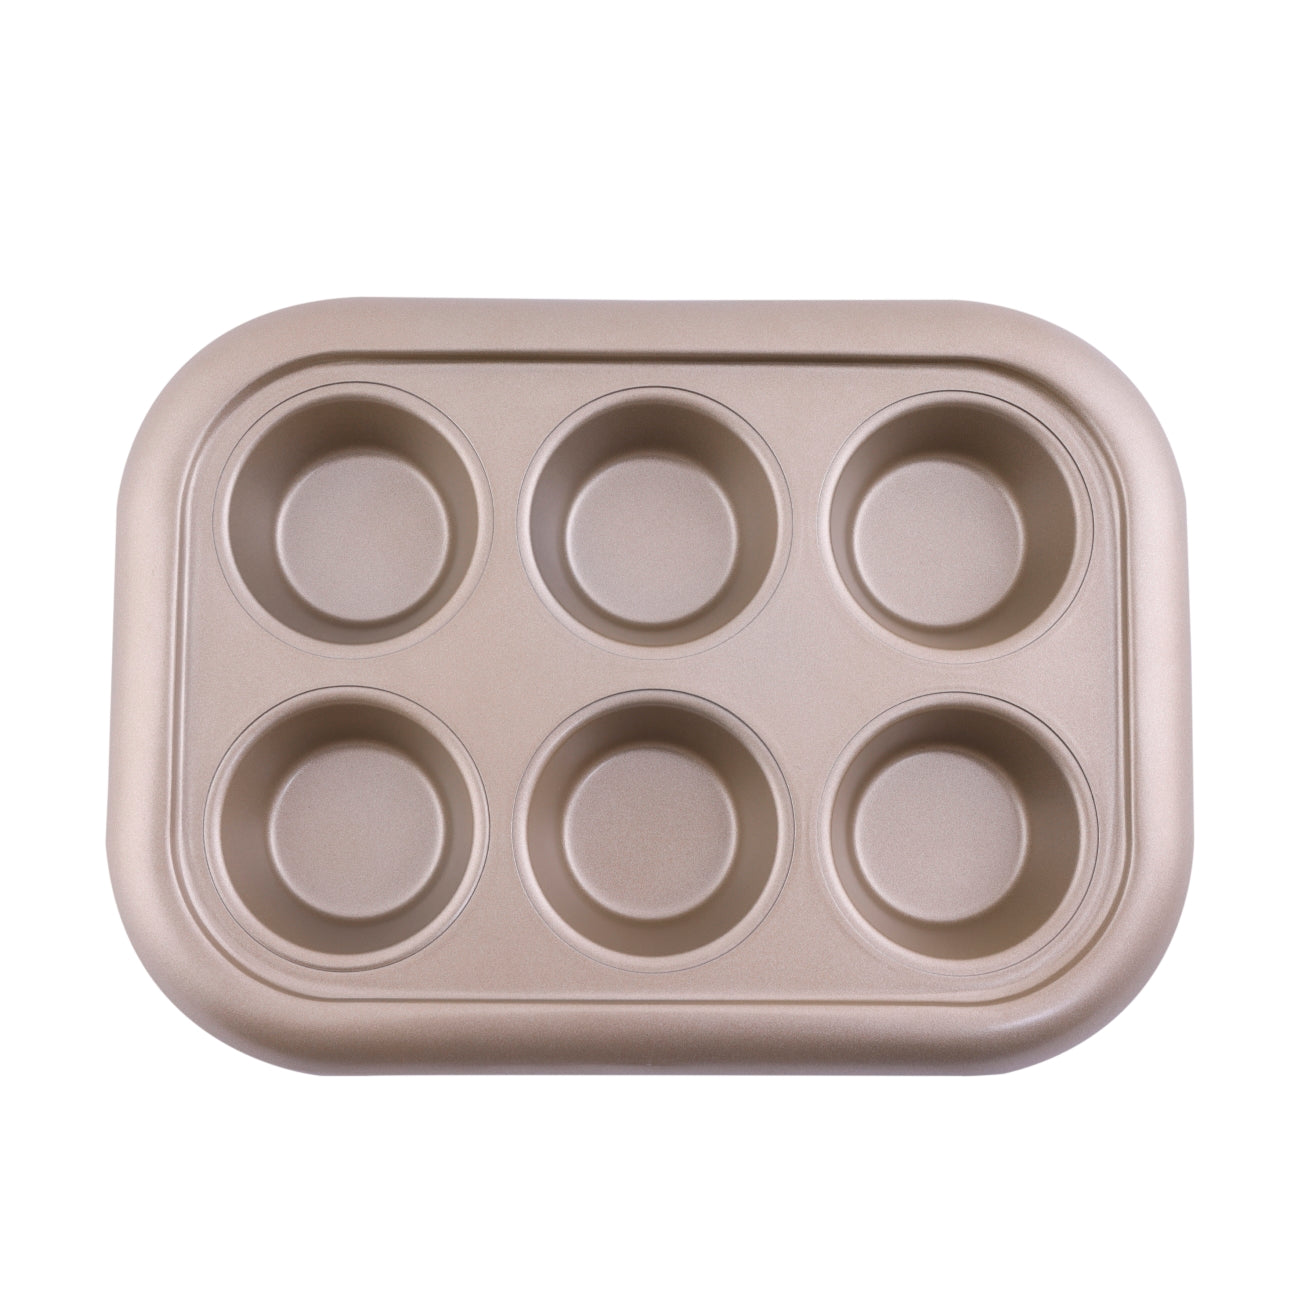 Royalford RF8792 Premium Non-Stick Muffin Tray, 6 Cup - Cupcake Tray/Baking Pan - Carbon Steel Build, Non-Stick Mince Pie/Cupcake Tin - Ideal for Cupcakes Muffin Pie Yorkshire Pudding Baking - 0.5mm Thick